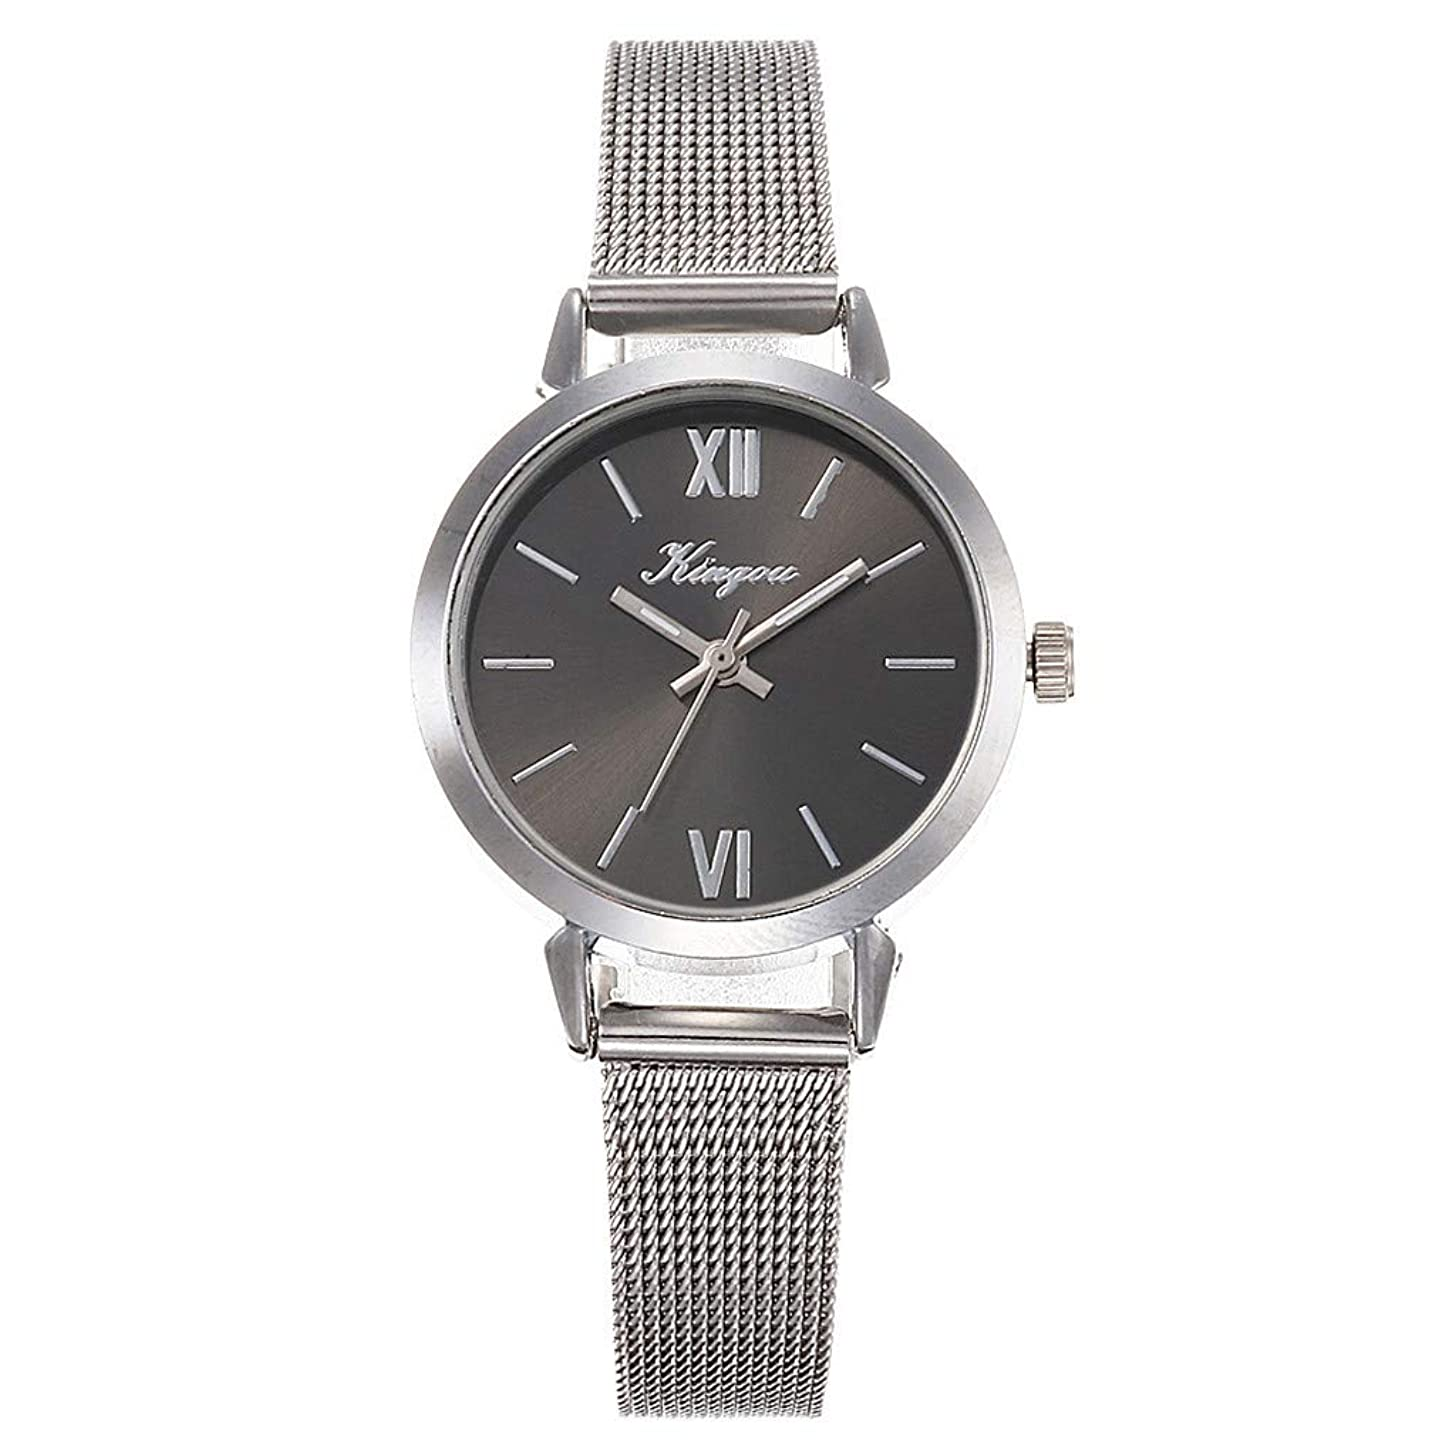 LUCAMORE Women Analog Quartz Watch Stainless Steel Mesh Band Casual Fashion Business Wrist Watches